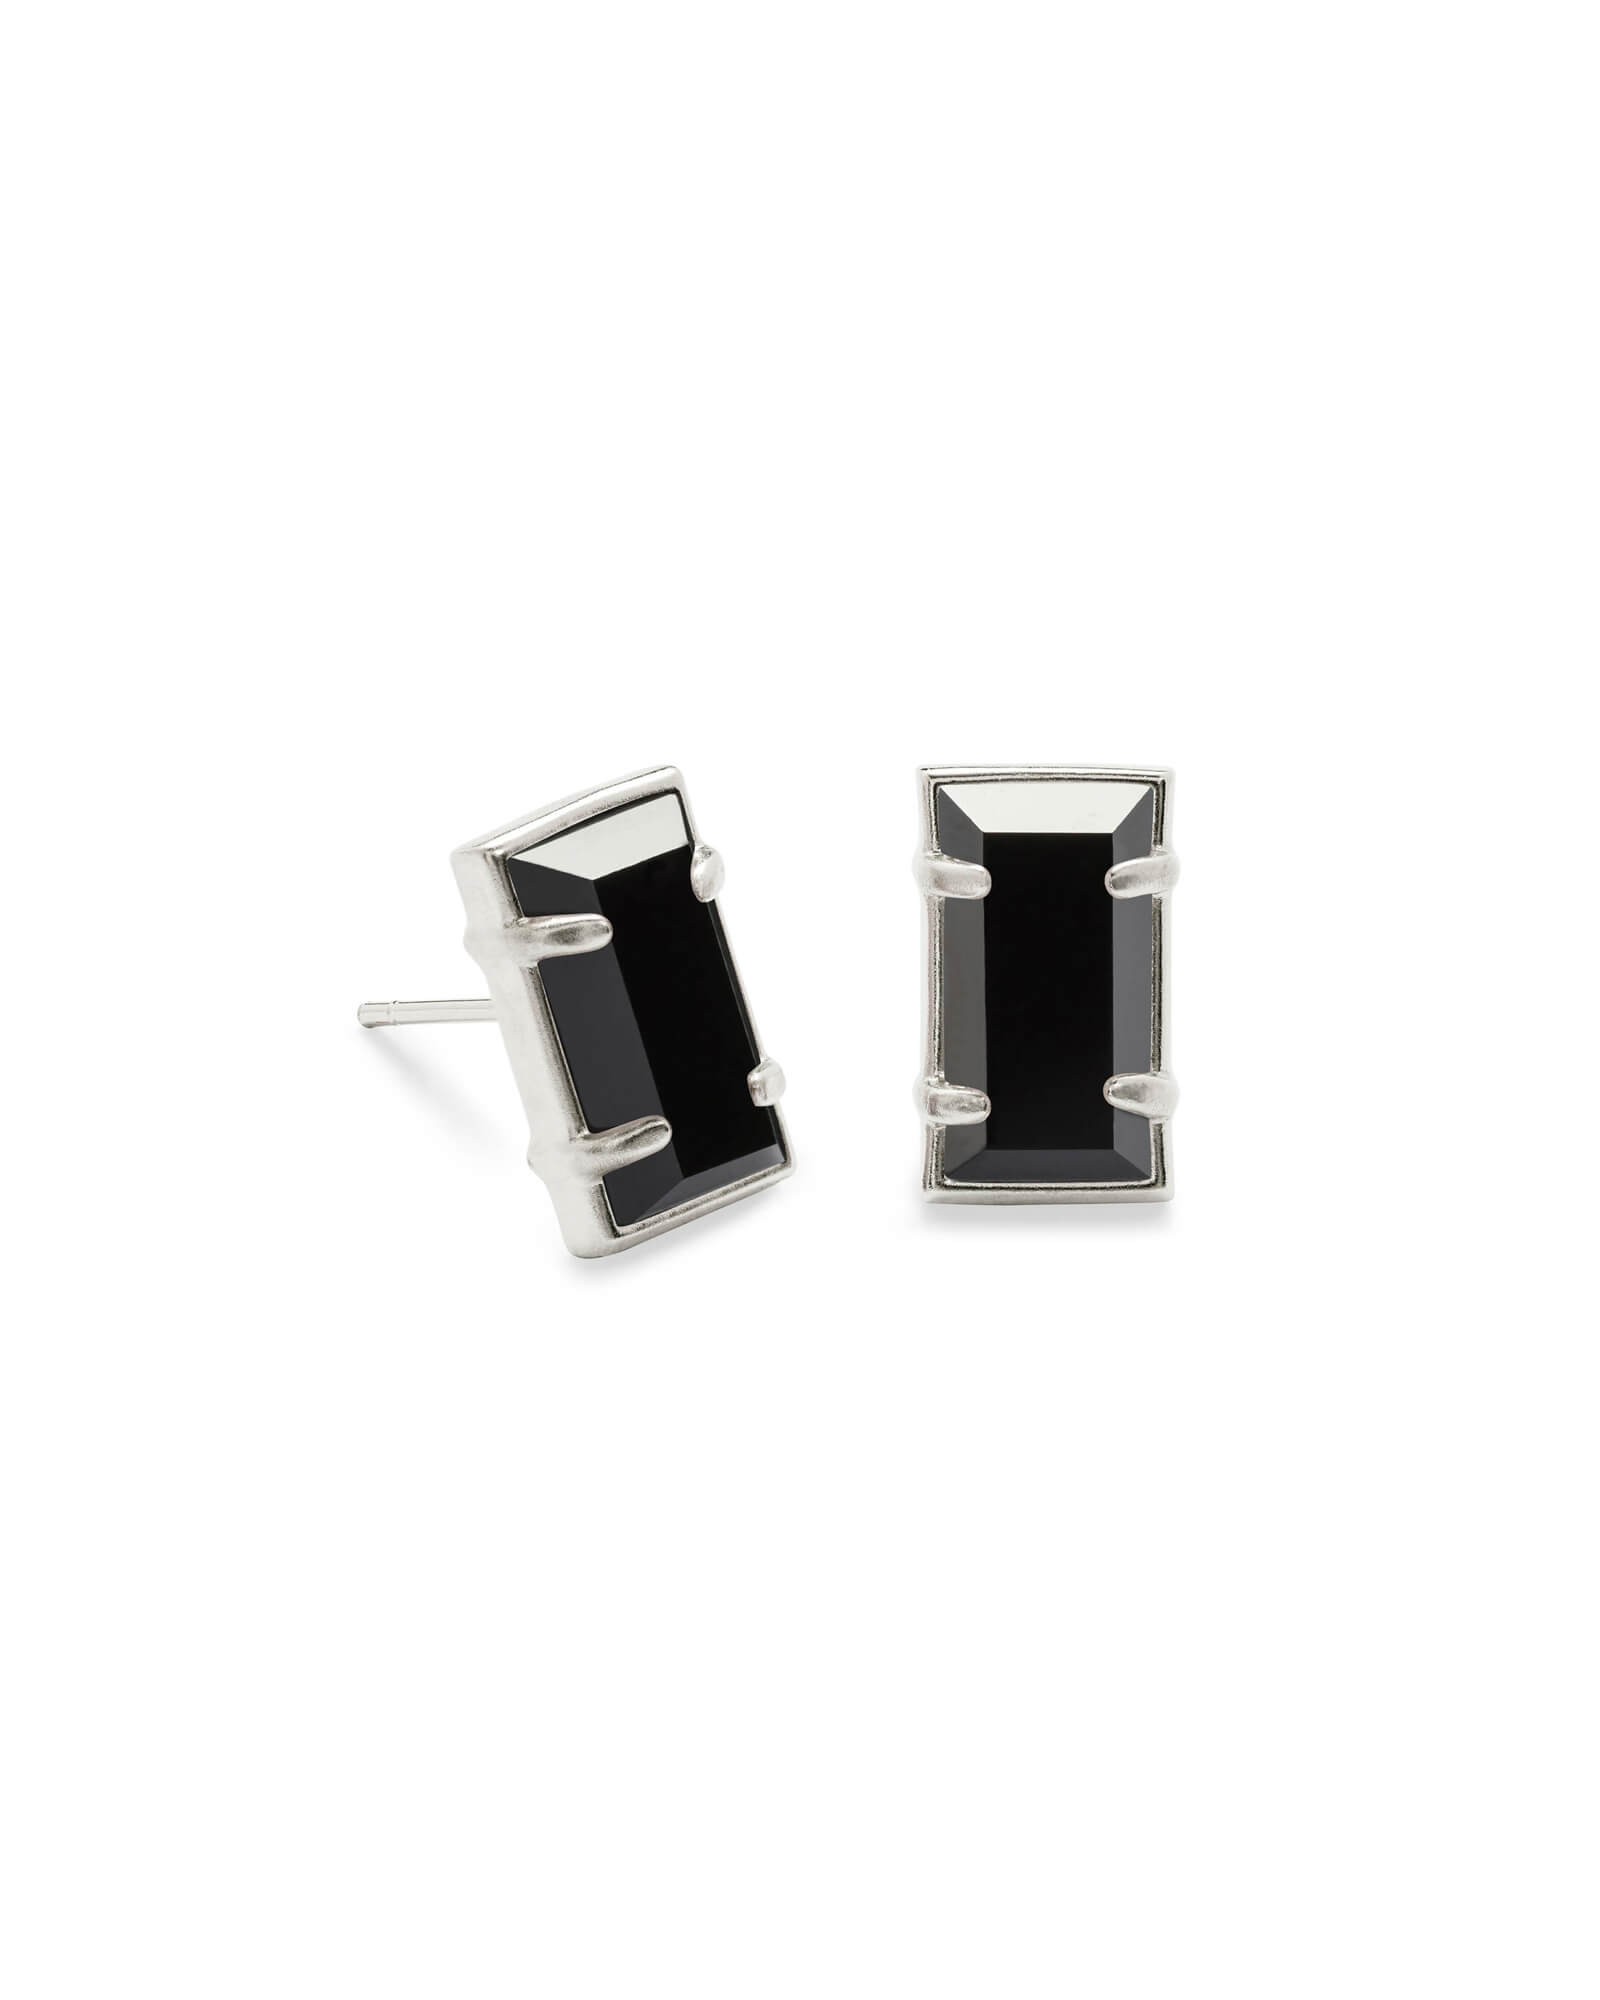 Paola Silver Stud Earrings in Black Opaque Glass